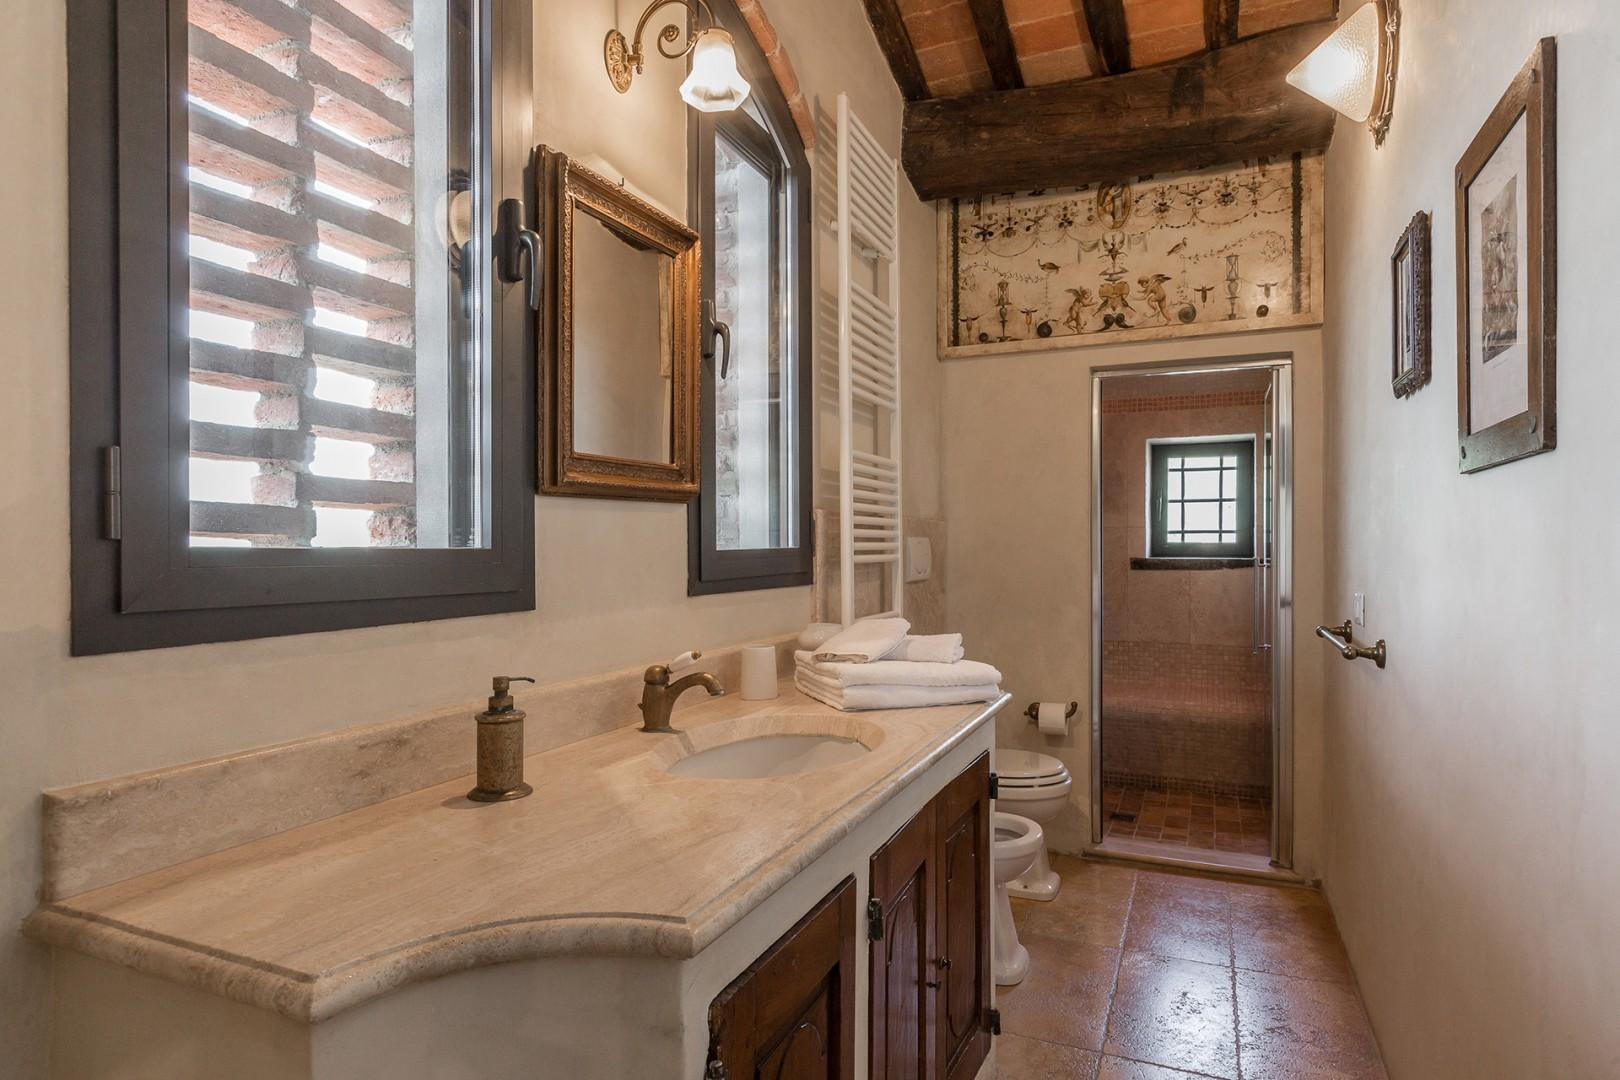 En suite bathroom to bedroom 1 has a large shower and good countertop space around the sink.